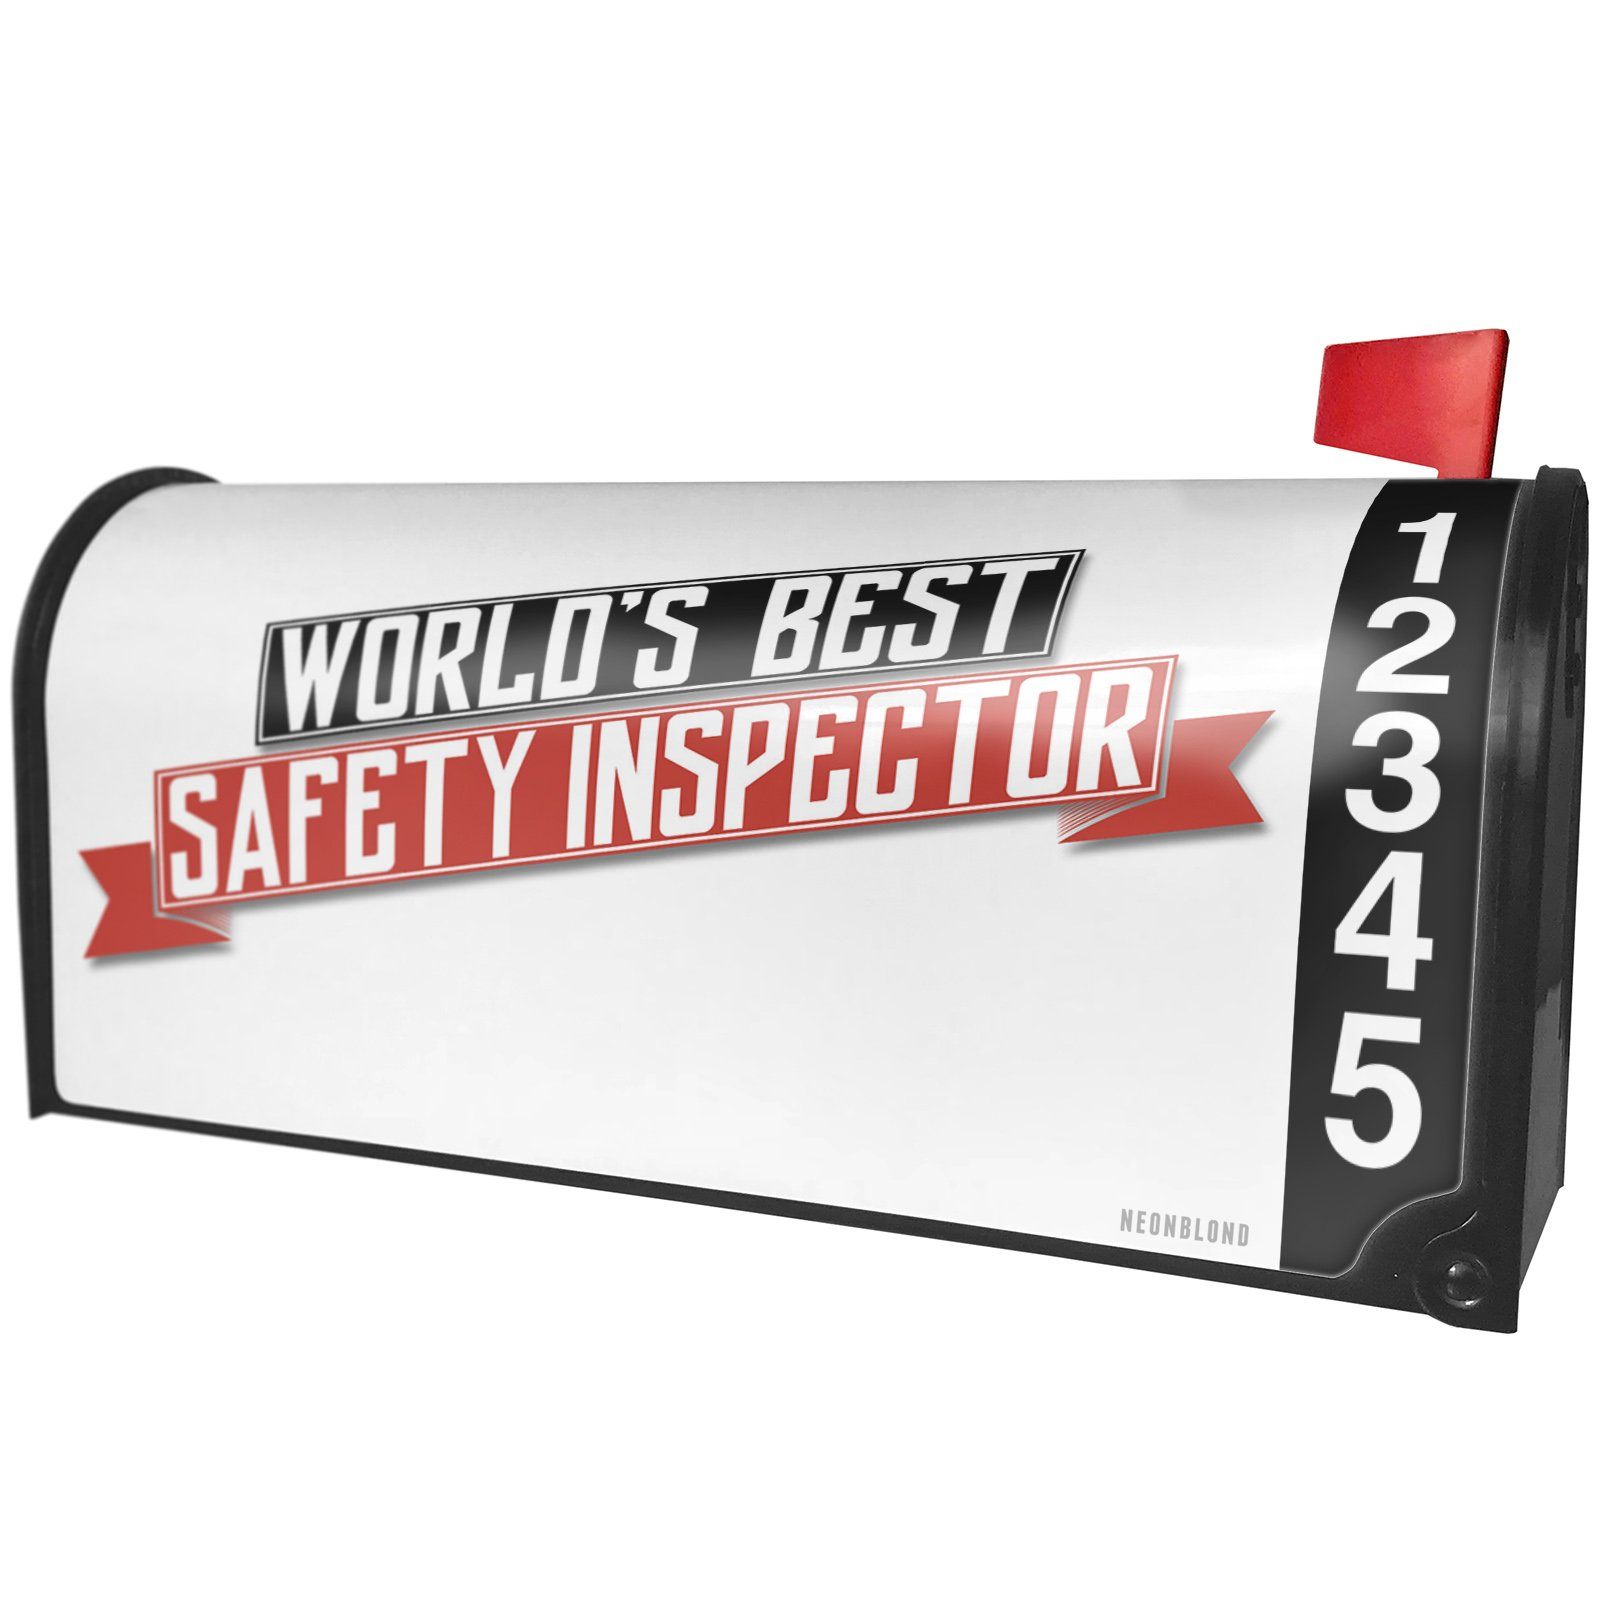 NEONBLOND Worlds Best Safety Inspector Magnetic Mailbox Cover Custom Numbers